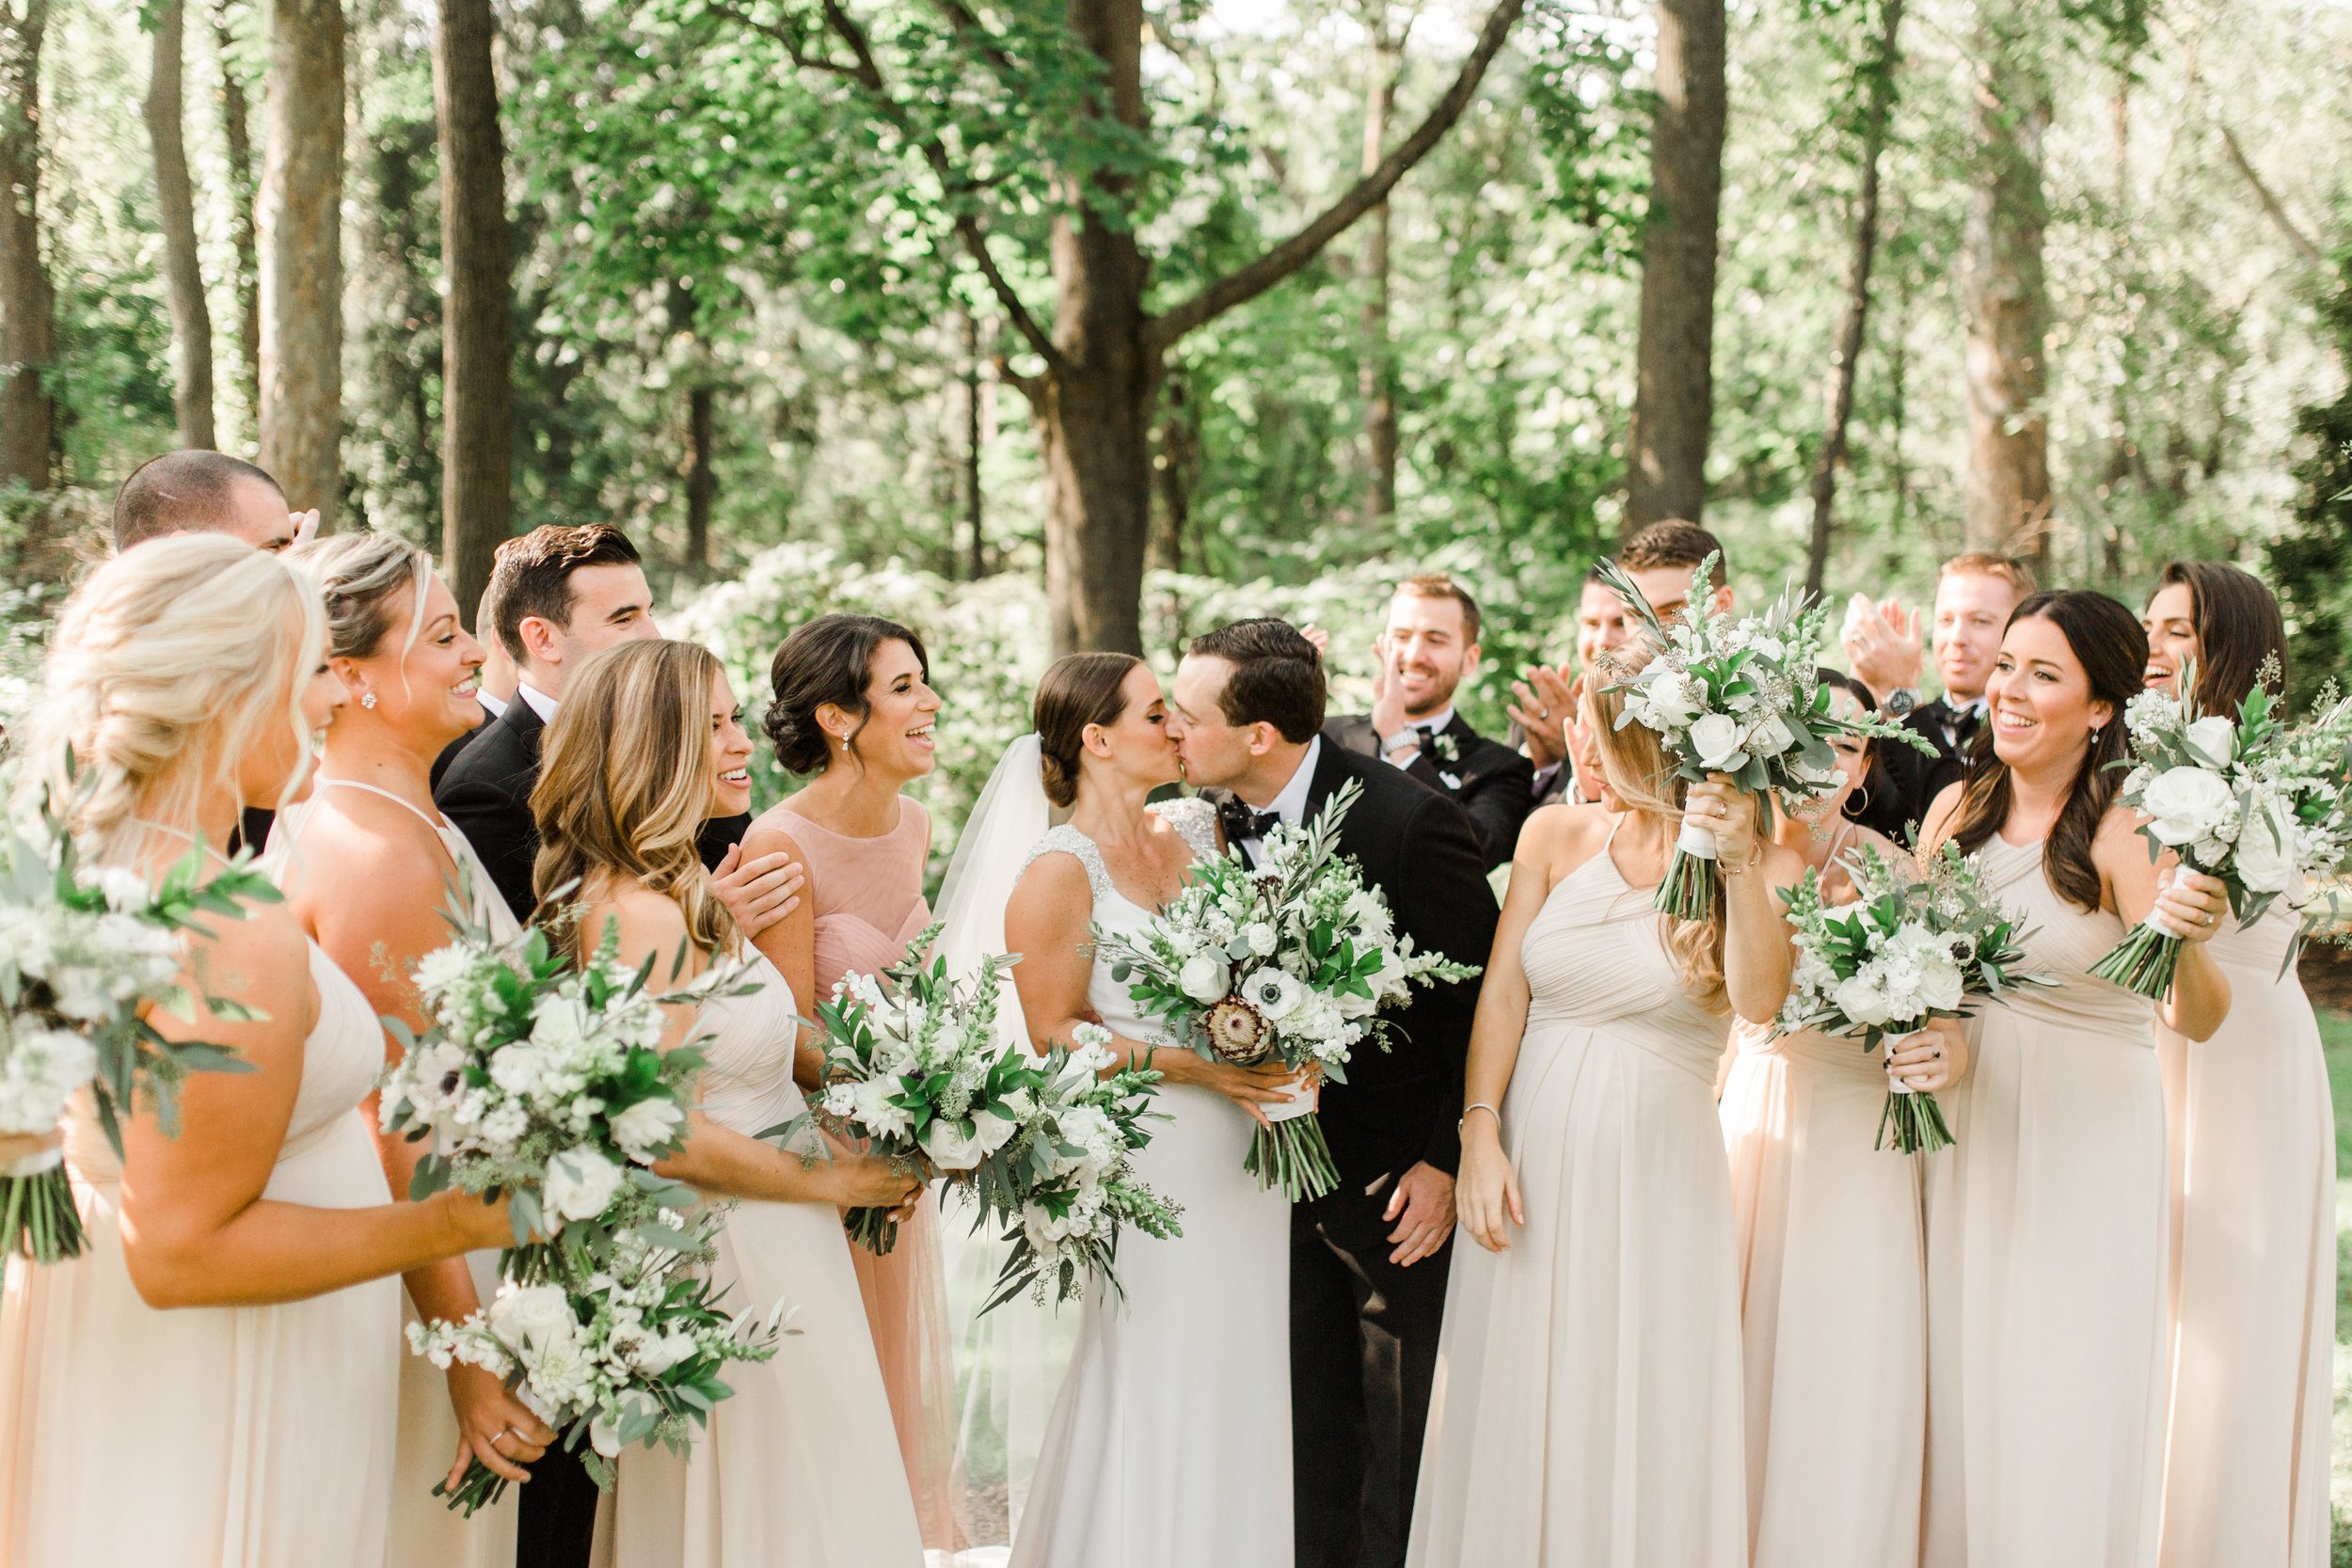 sarahandryan_wedding (231 of 1016).jpg